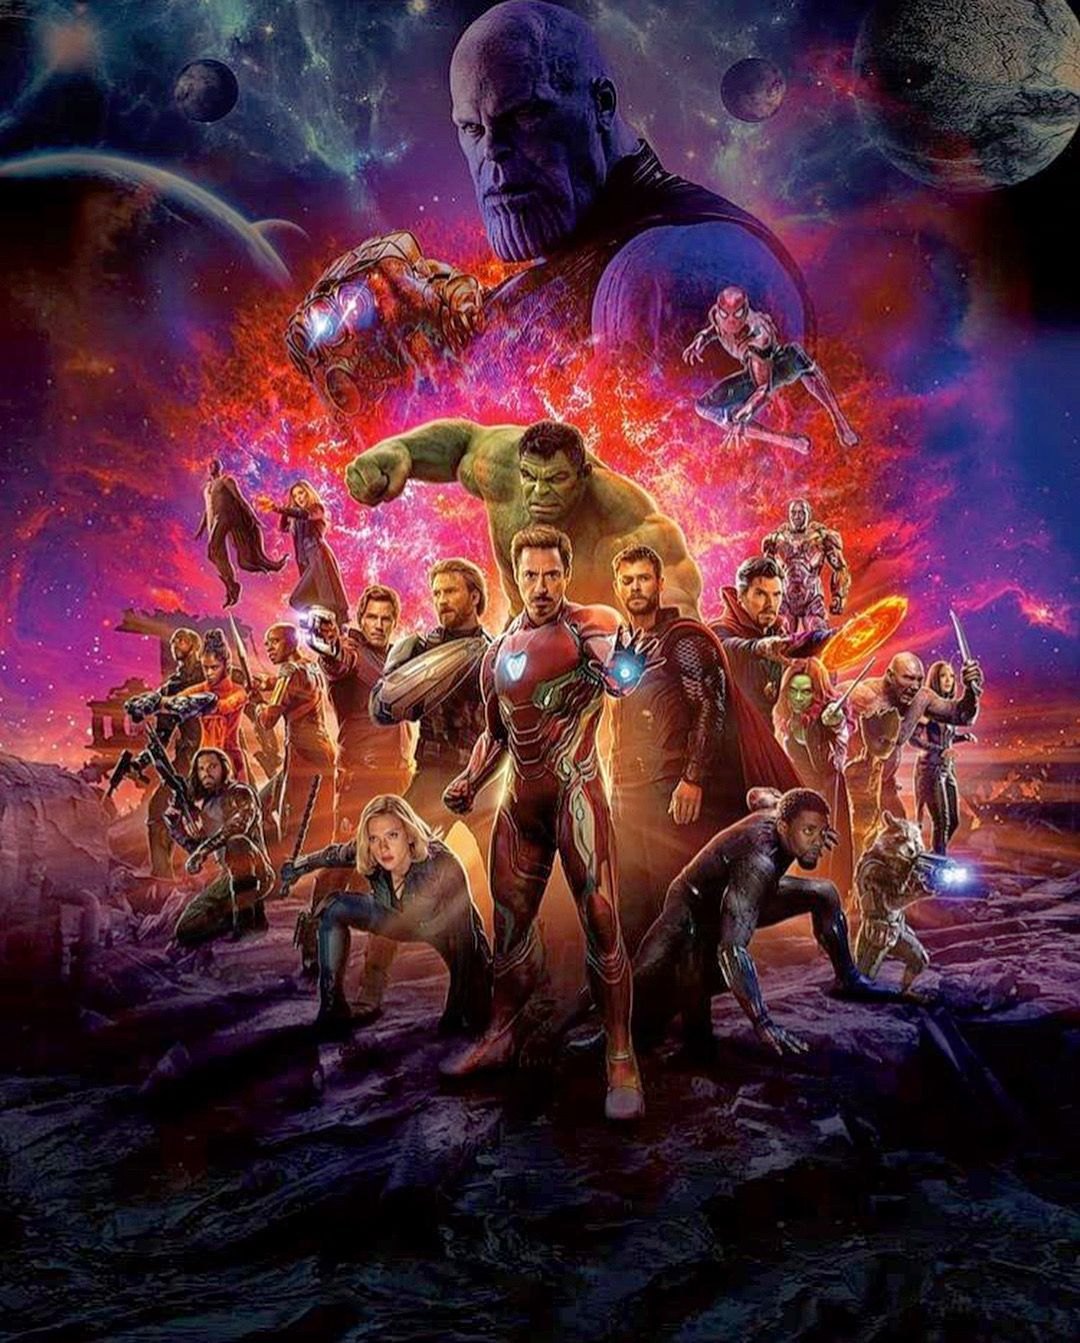 Avengers Infinity War Chinese Theatrical Poster Textless Marvel Posters Marvel Avengers